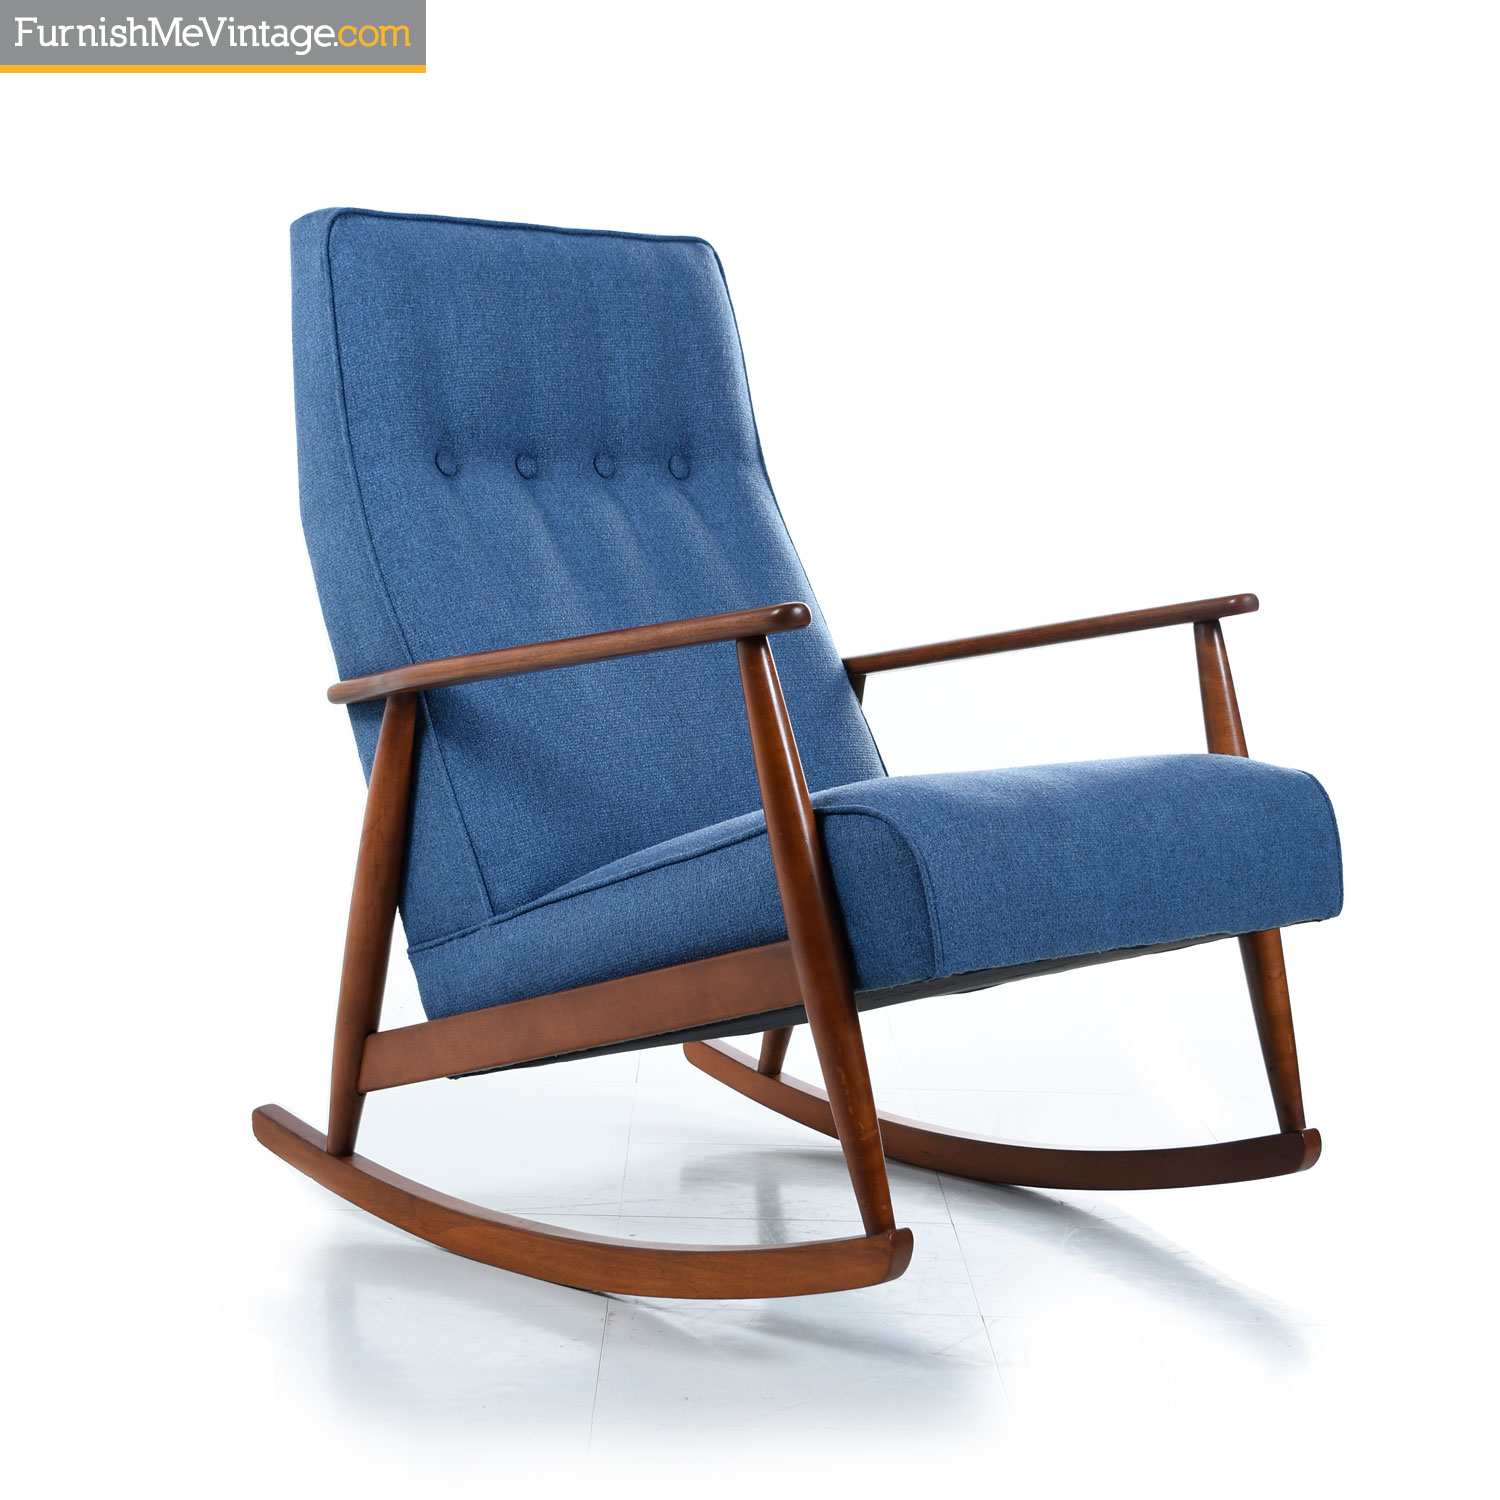 The Furnish German Beech Mid Century Modern Blue Rocking Chair